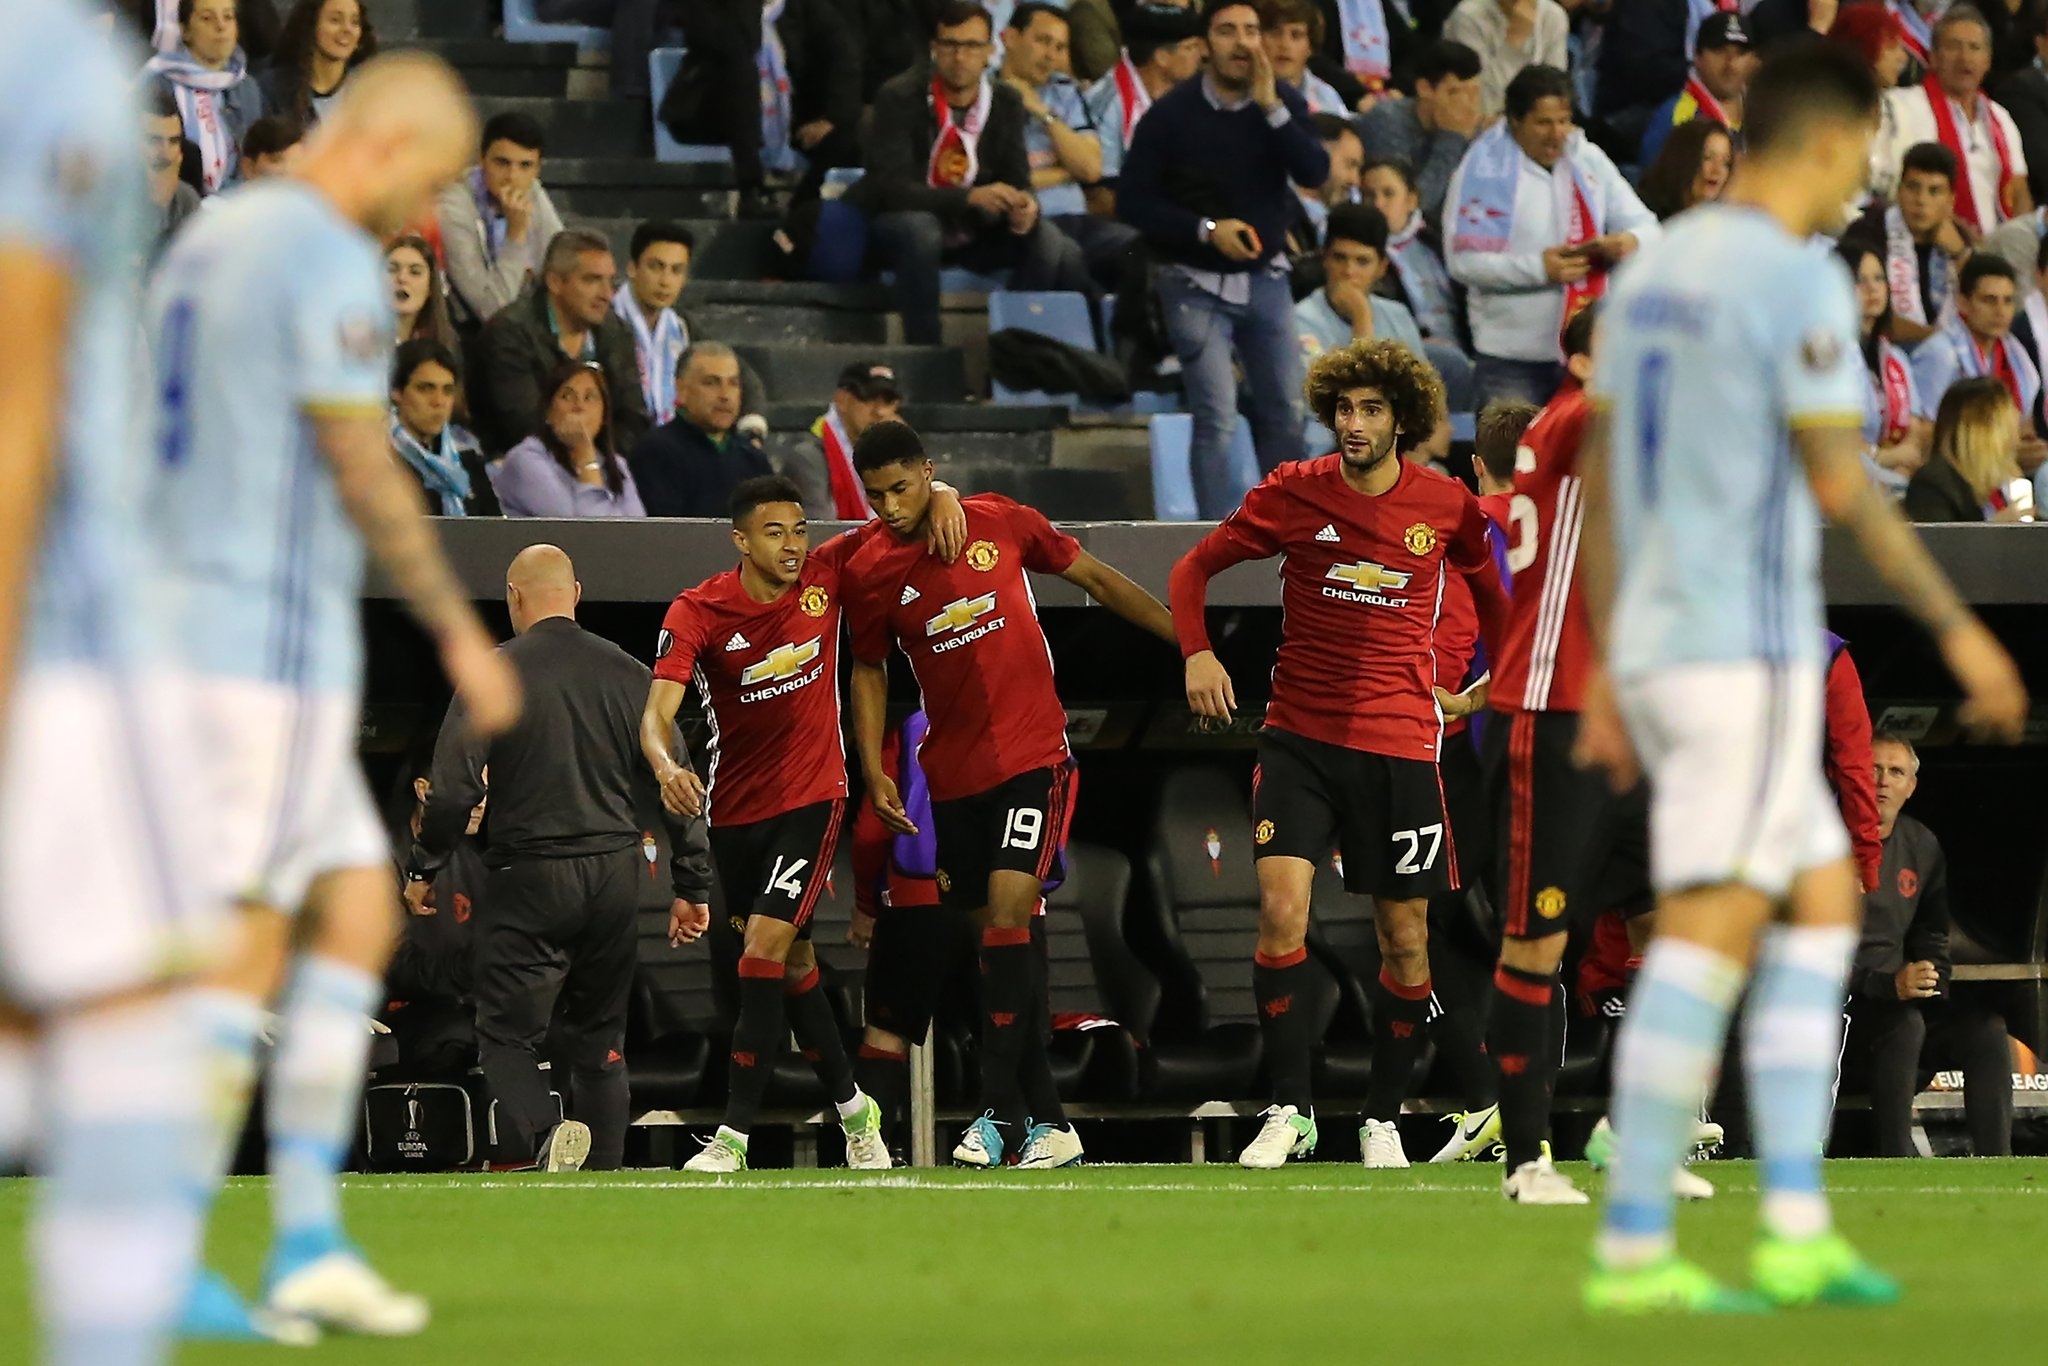 Europa: Rashford Scores Stunner Vs Celta As United Take First Leg Advantage